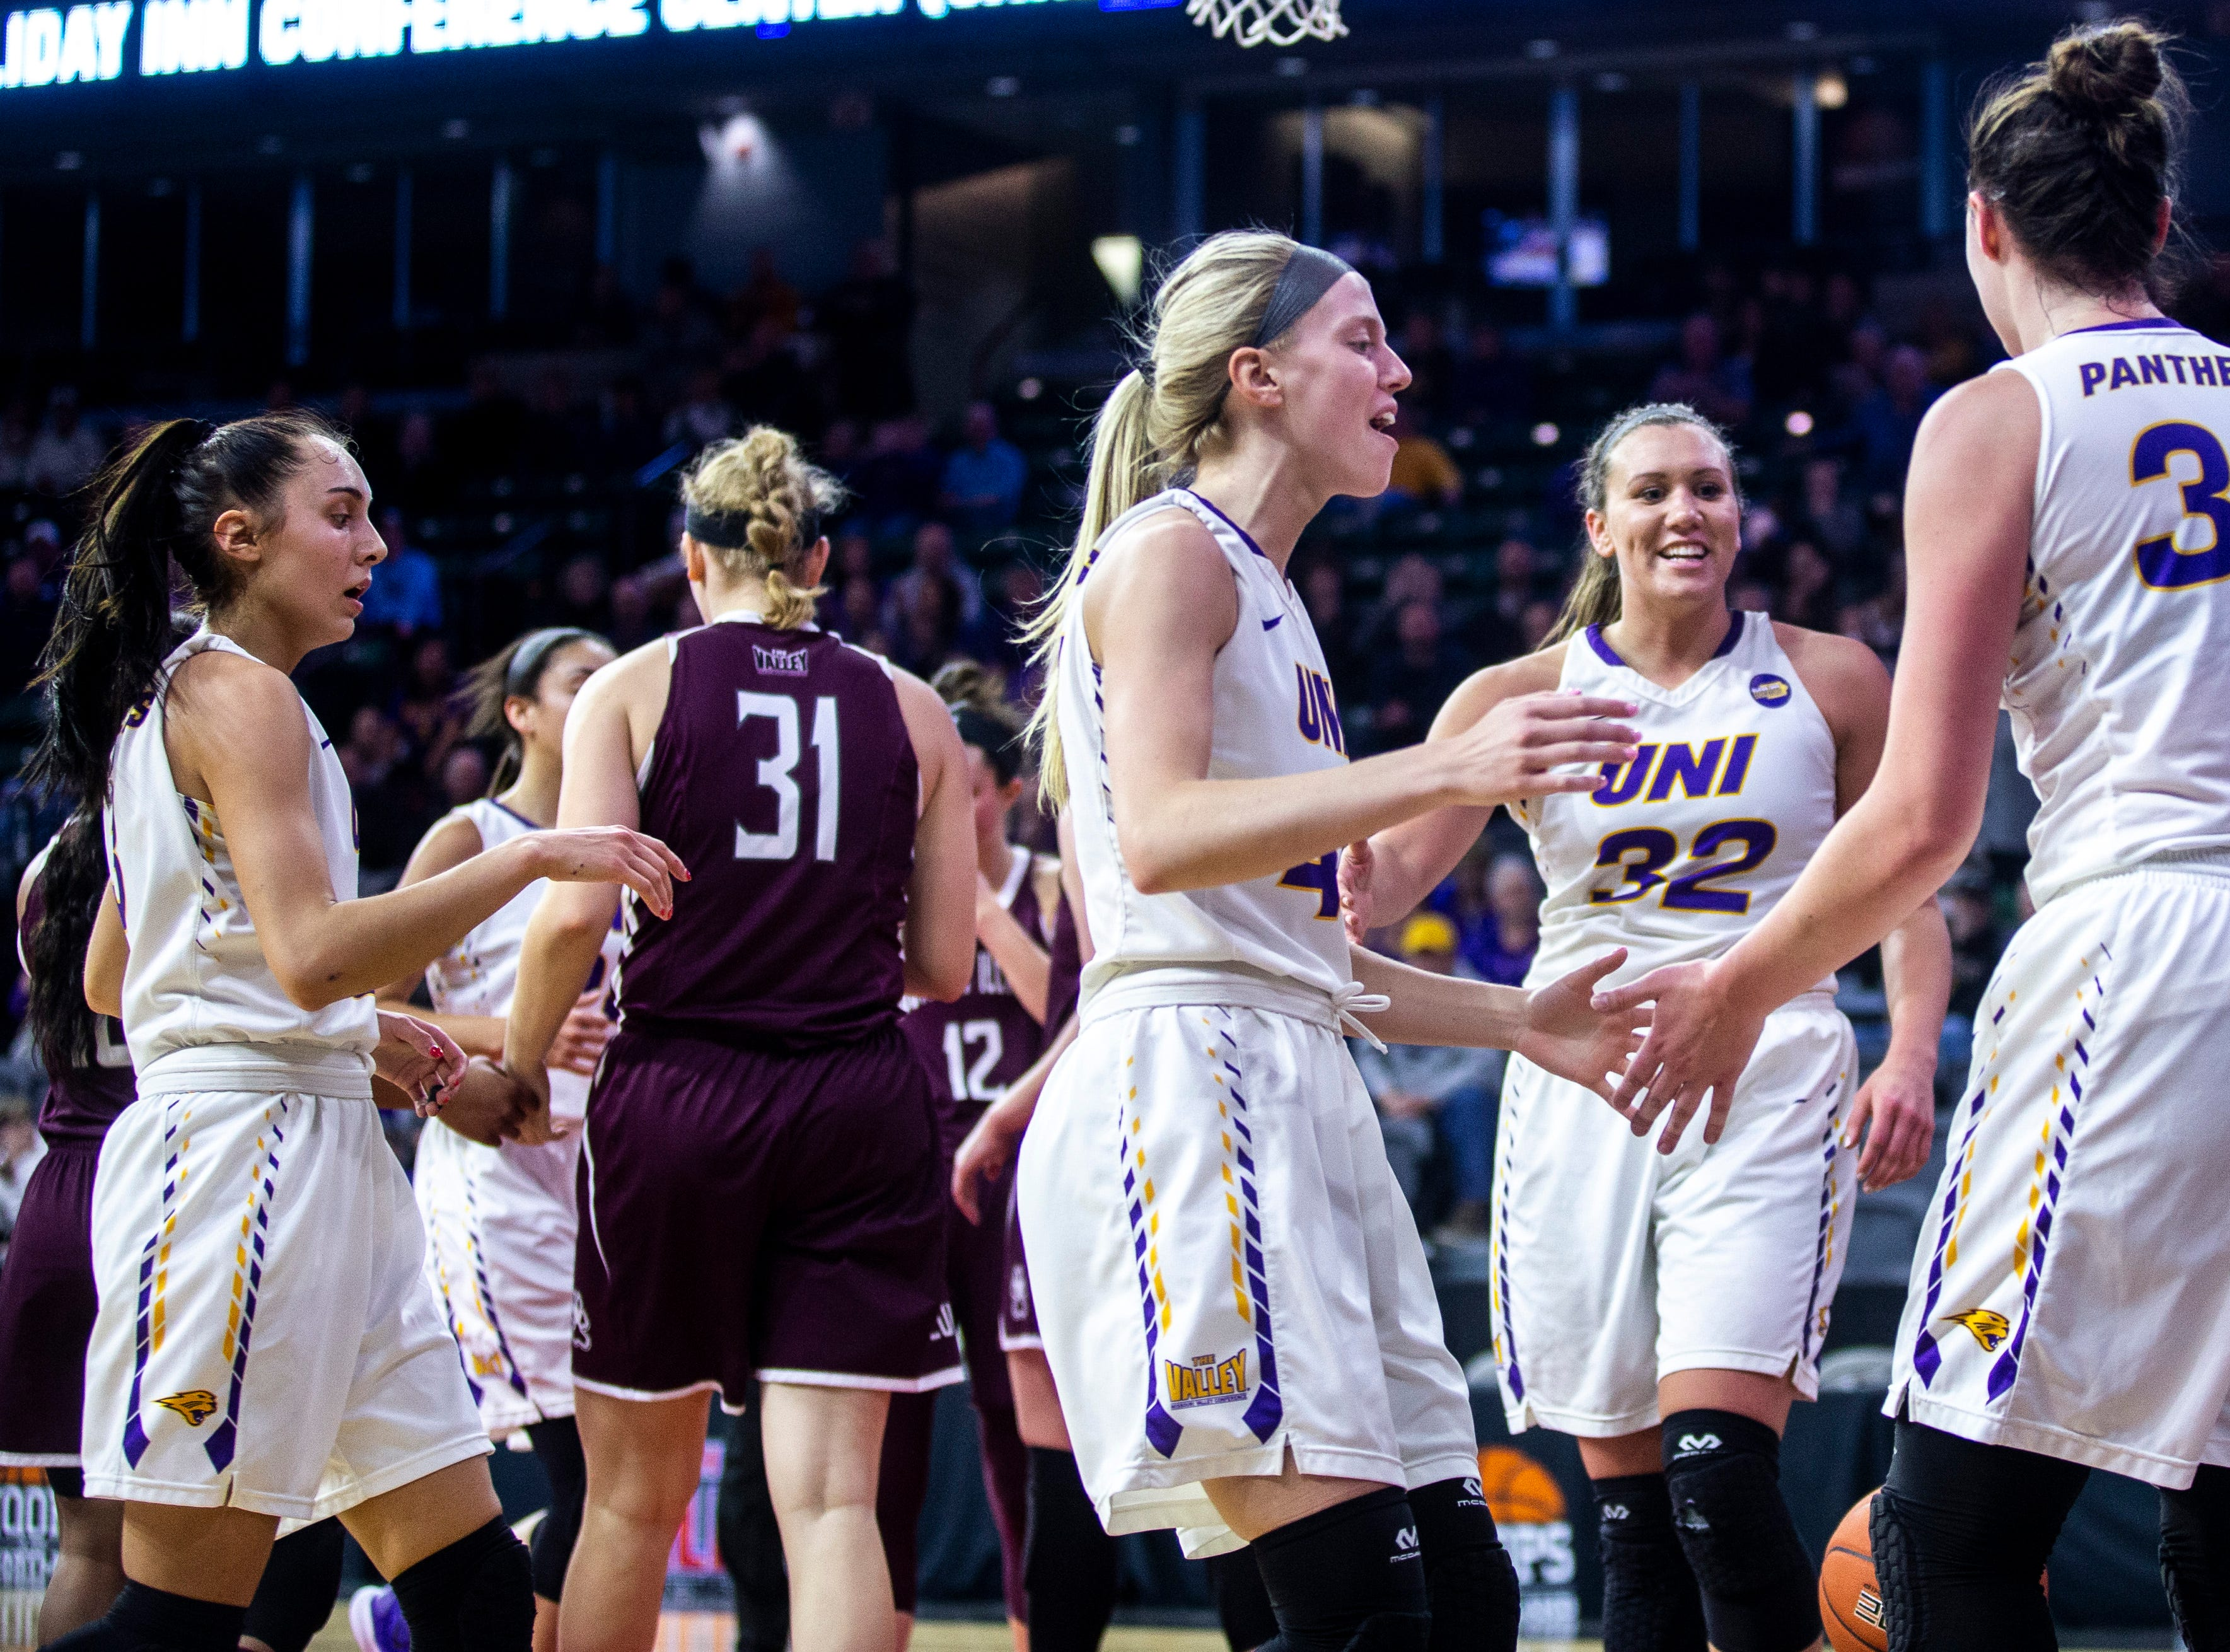 Northern Iowa forward Taylor Hagen (34) gets embraced by teammates, from left, Karli Rucker Abby Gerrits and Heidi Hillyard (32) after drawing a foul during a NCAA Missouri Valley Conference women's basketball quarterfinal tournament game, Friday, March 15, 2019, at the TaxSlayer Center in Moline, Illinois.